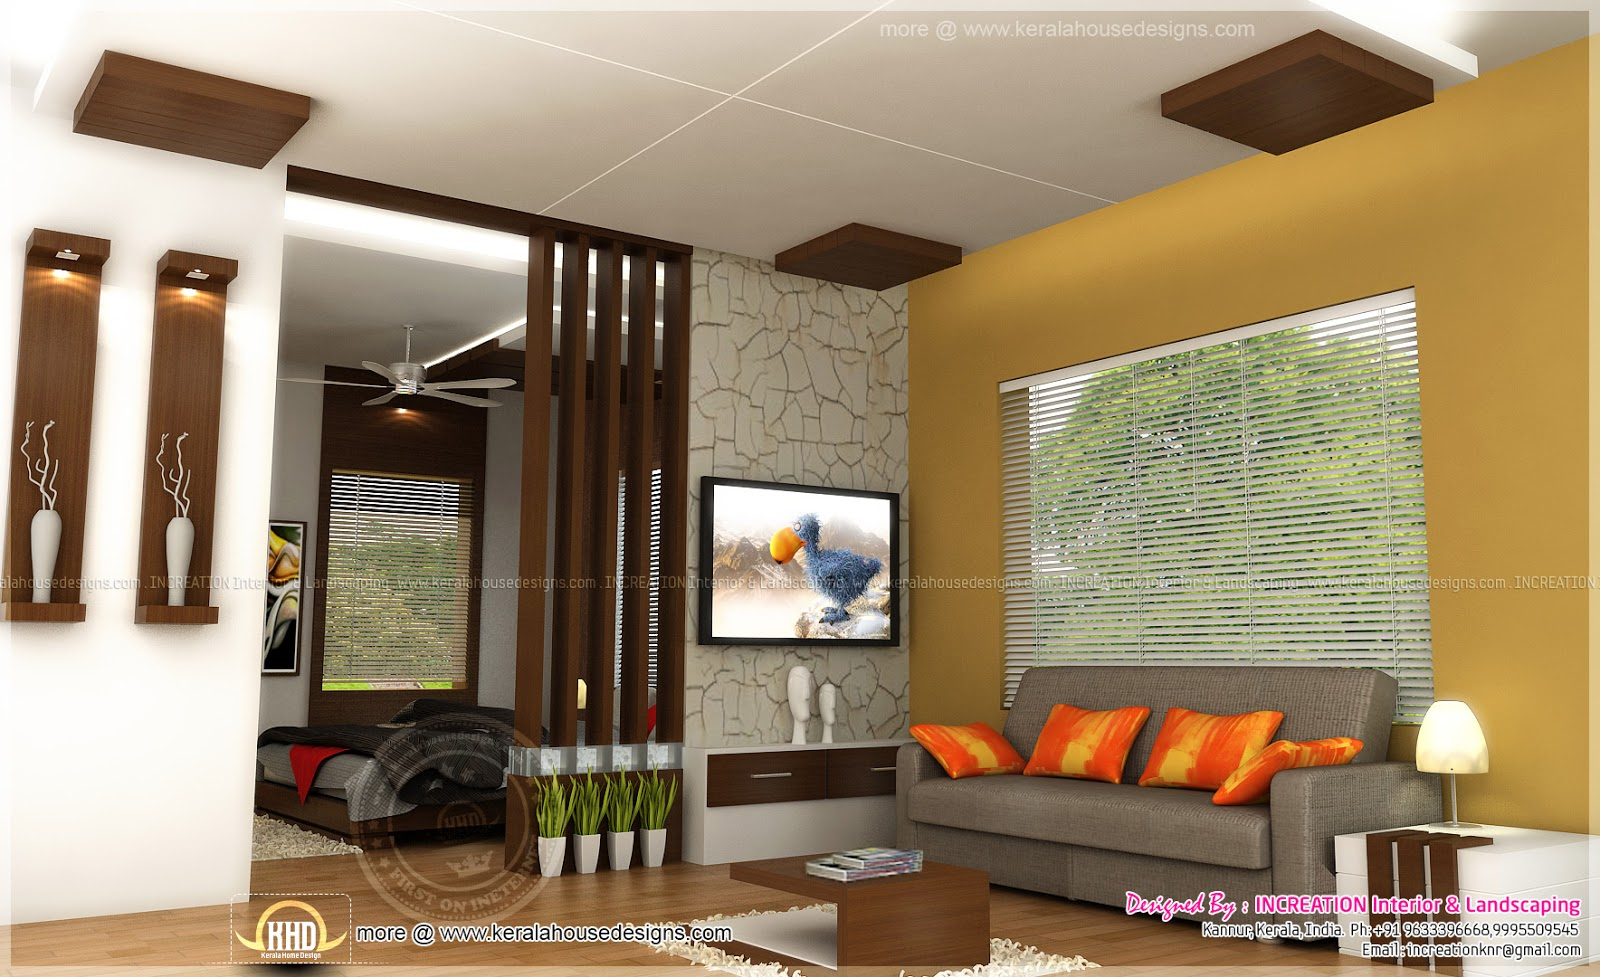 Interior designs from kannur kerala home kerala plans Home interior design indian style